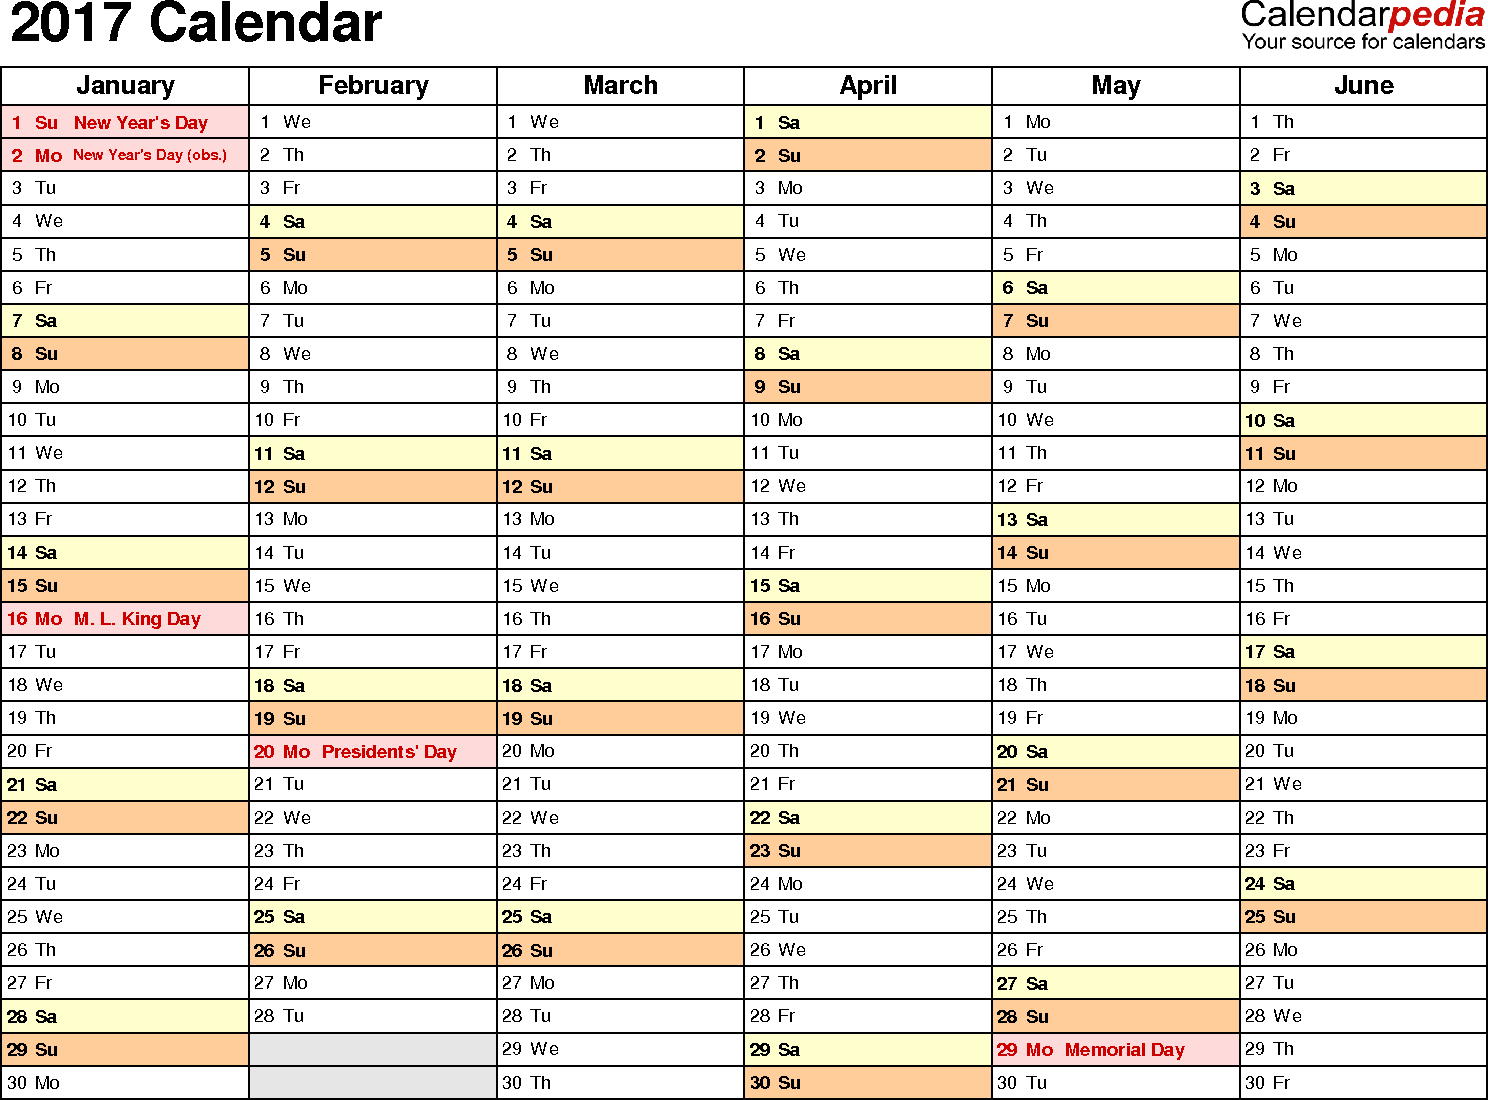 Ediblewildsus  Pleasing  Calendar  Download  Free Printable Excel Templates Xls With Fair Template   Calendar For Excel Months Horizontally  Pages Landscape Orientation With Nice Test Case Template Excel Also How To Use An If Function In Excel In Addition How To Update Excel On Mac And Drop Down Calendar In Excel As Well As How To Record Macro In Excel Additionally Free Online Excel Test From Calendarpediacom With Ediblewildsus  Fair  Calendar  Download  Free Printable Excel Templates Xls With Nice Template   Calendar For Excel Months Horizontally  Pages Landscape Orientation And Pleasing Test Case Template Excel Also How To Use An If Function In Excel In Addition How To Update Excel On Mac From Calendarpediacom